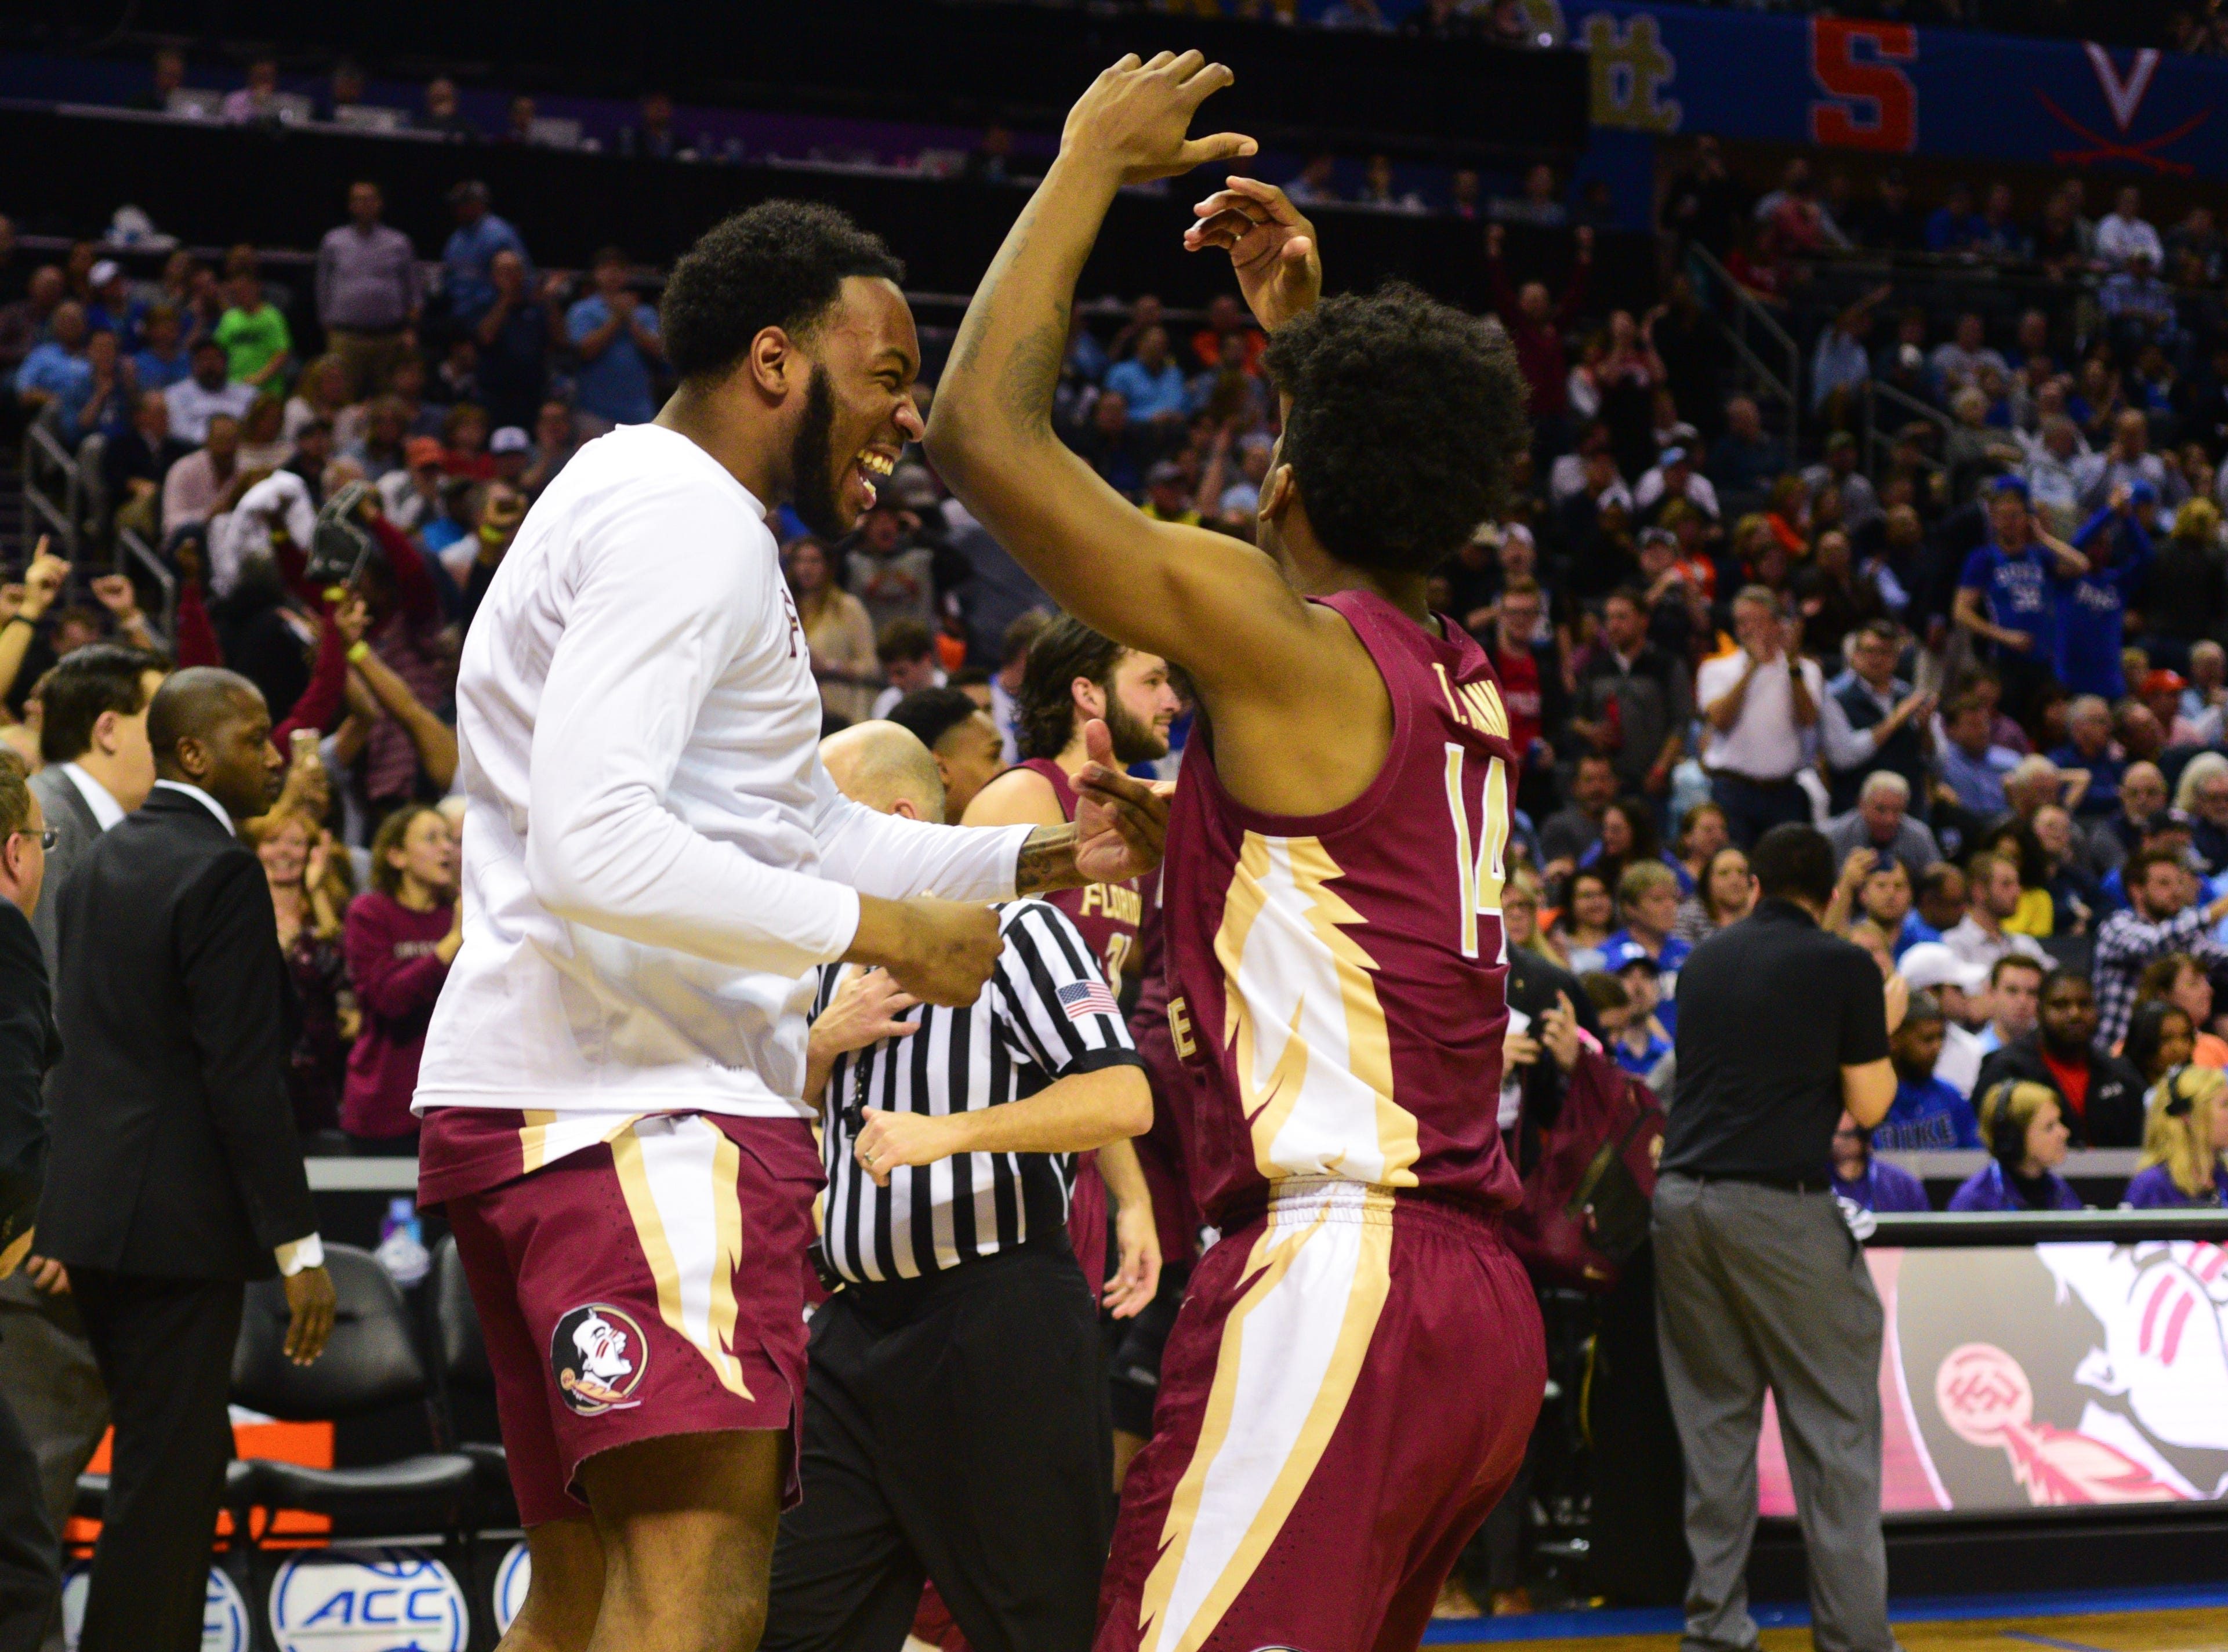 Senior guards PJ Savoy, left, and Terance Mann, right, celebrate after Florida State's 69-59 victory over Virginia in the ACC Tournament Semifinal game at the Spectrum Center on Friday.